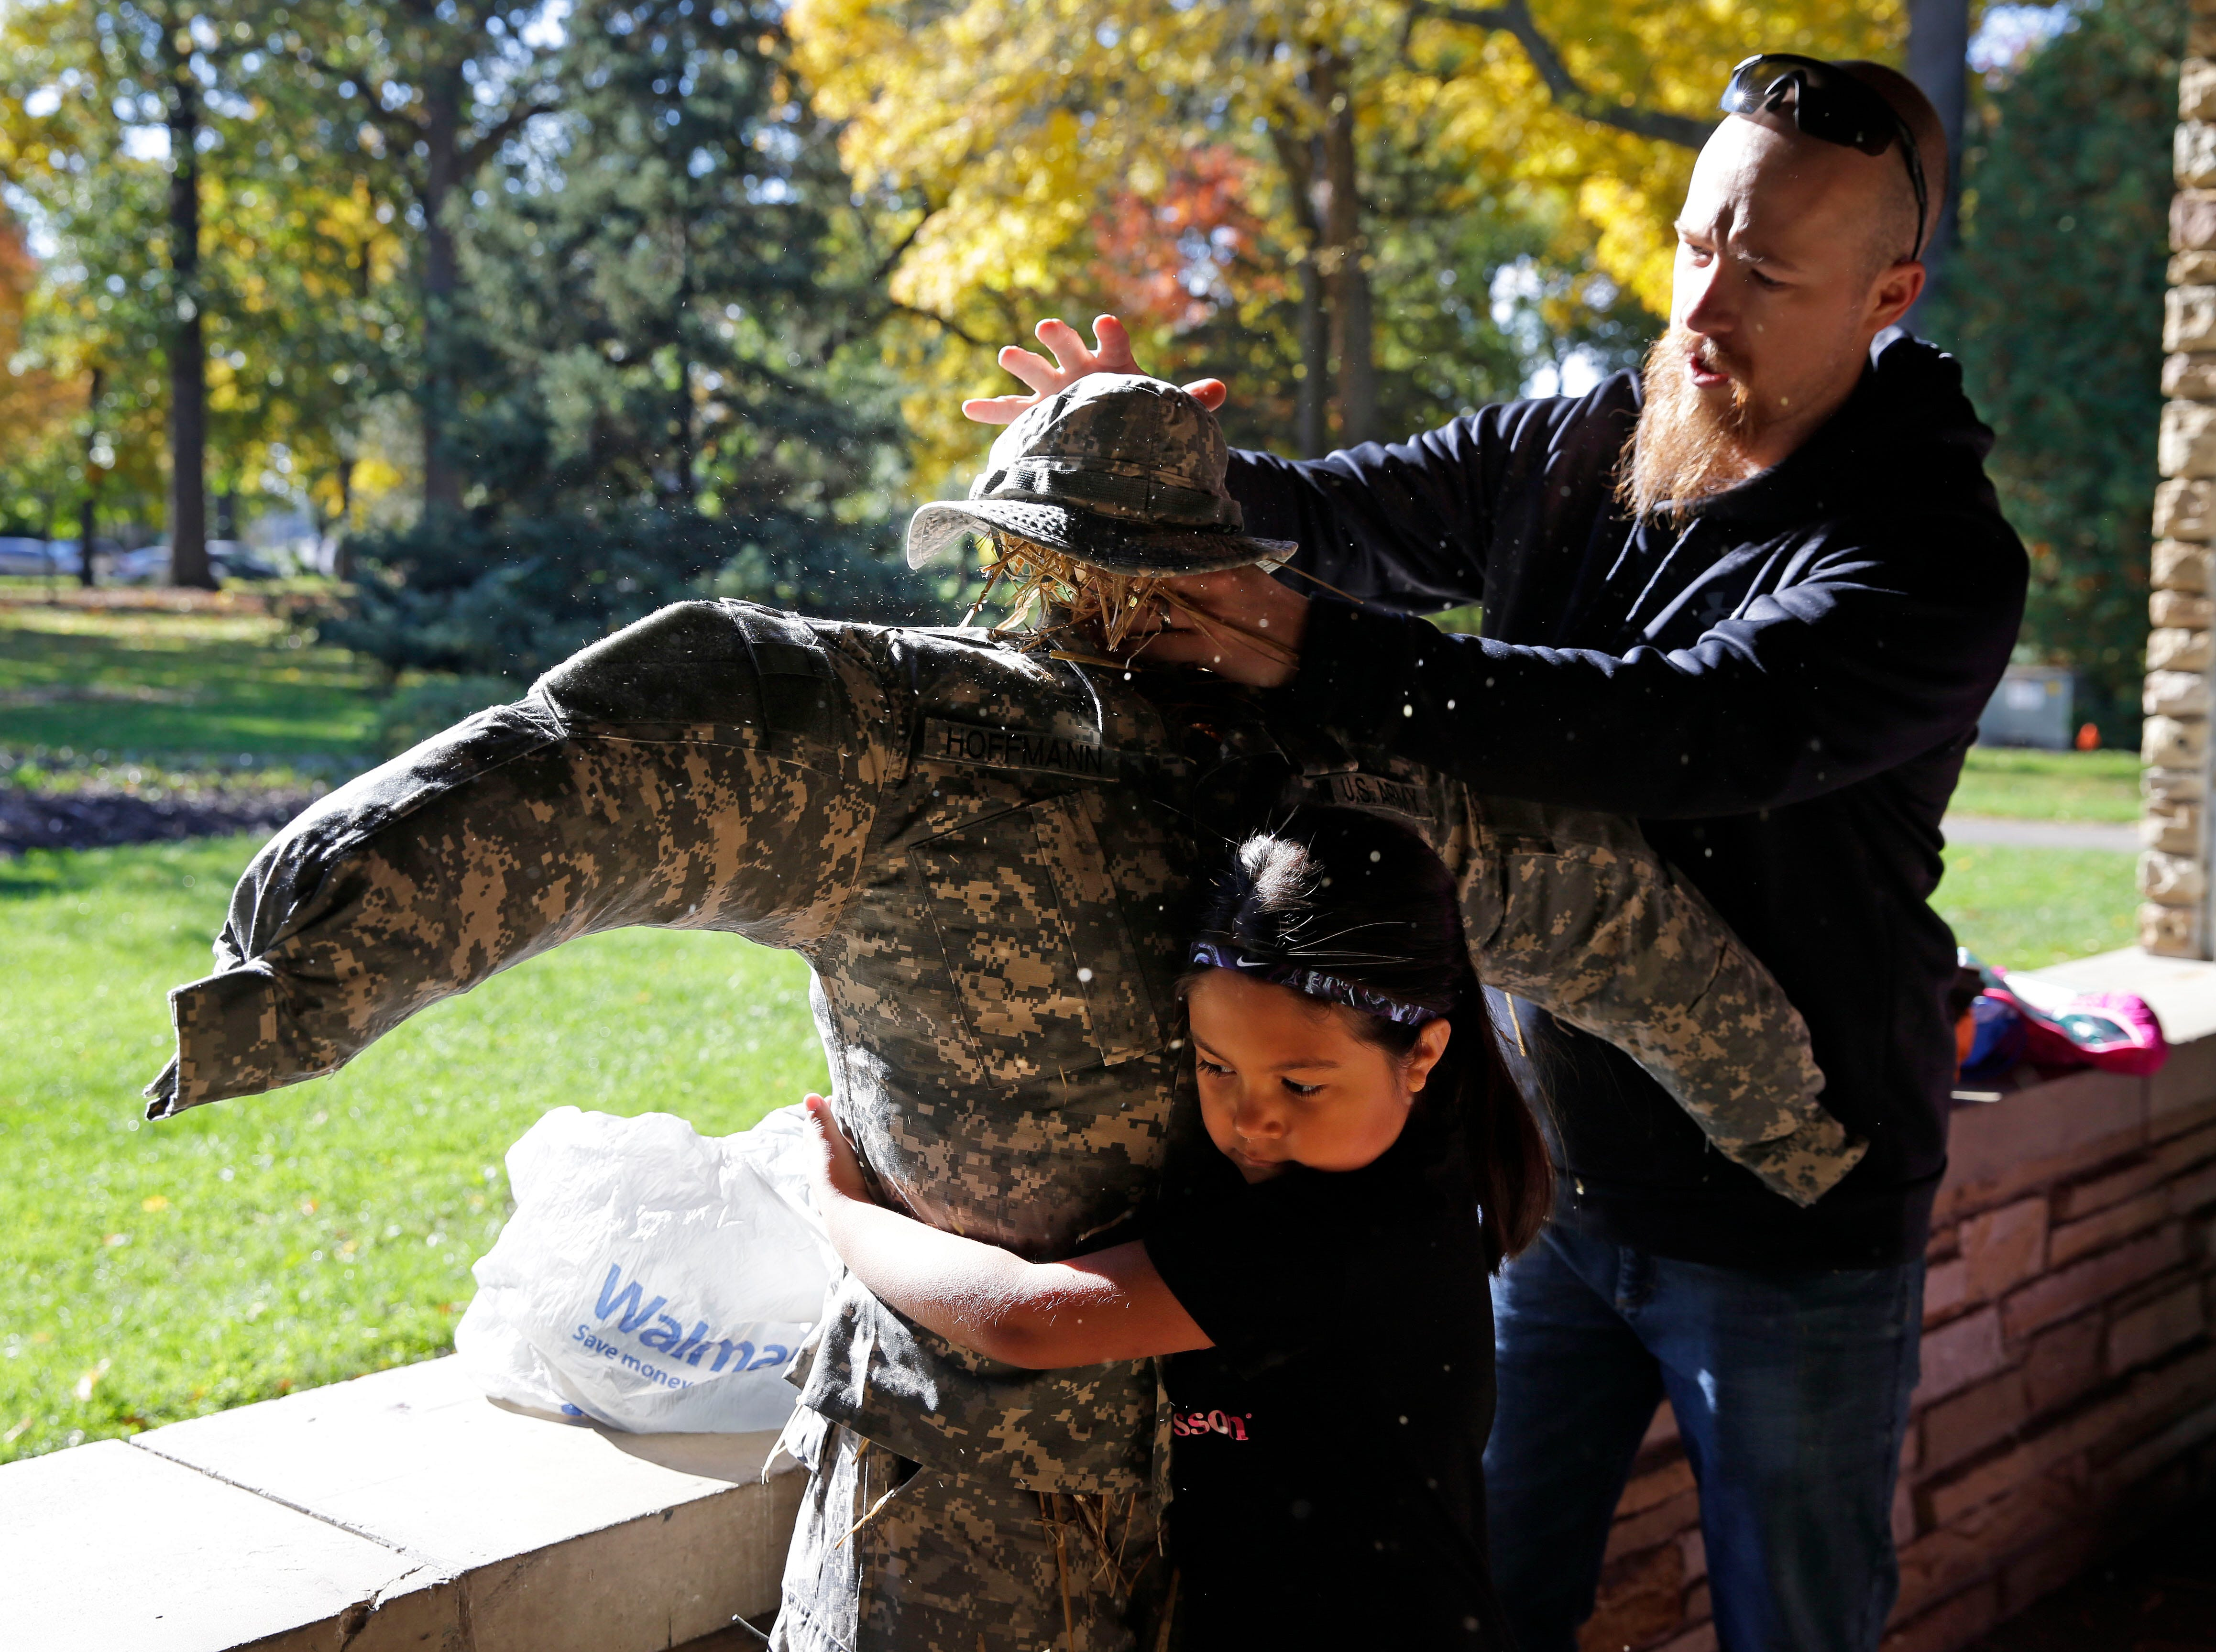 Devin Hoffmann and his daughter Gabby work on their scarecrow during the annual Build-A-Scarecrow event. The Neenah Parks and Recreation Department provided the frame and straw and families brought clothes and imaginations Saturday, October 13, 2018, at Riverside Park in Neenah, Wis.